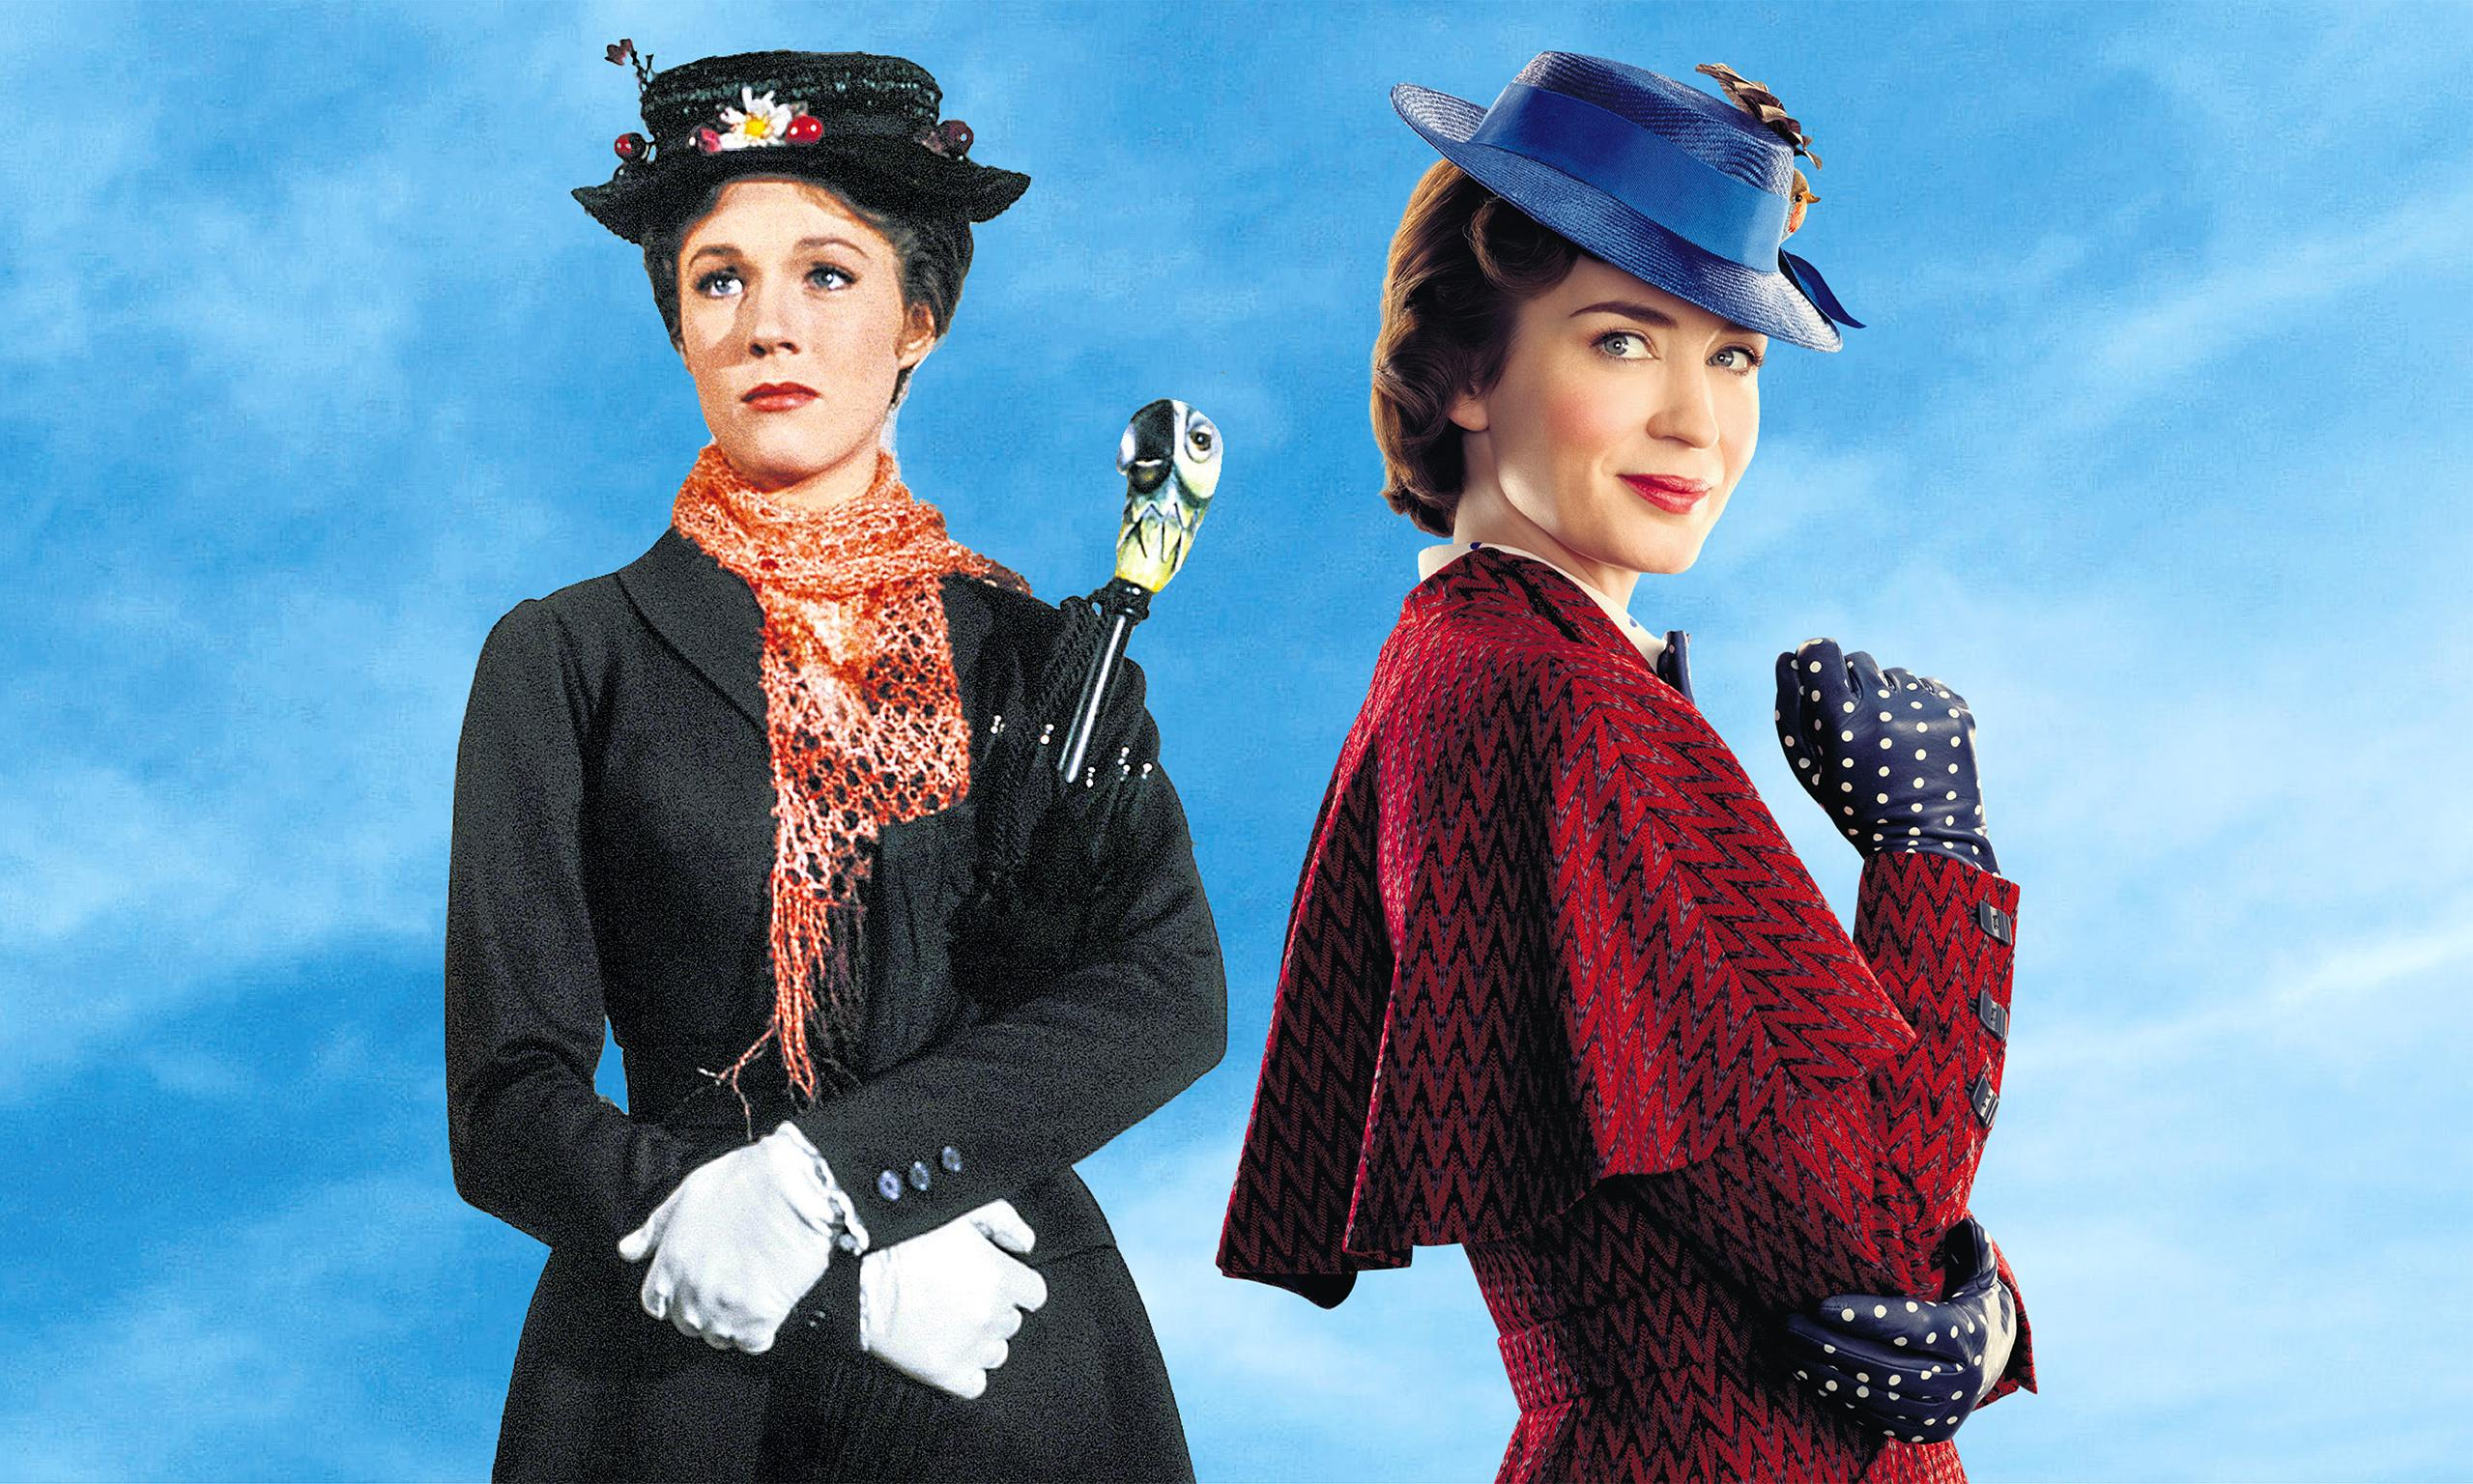 Mary Poppins: why we need a spoonful of sugar more than ever